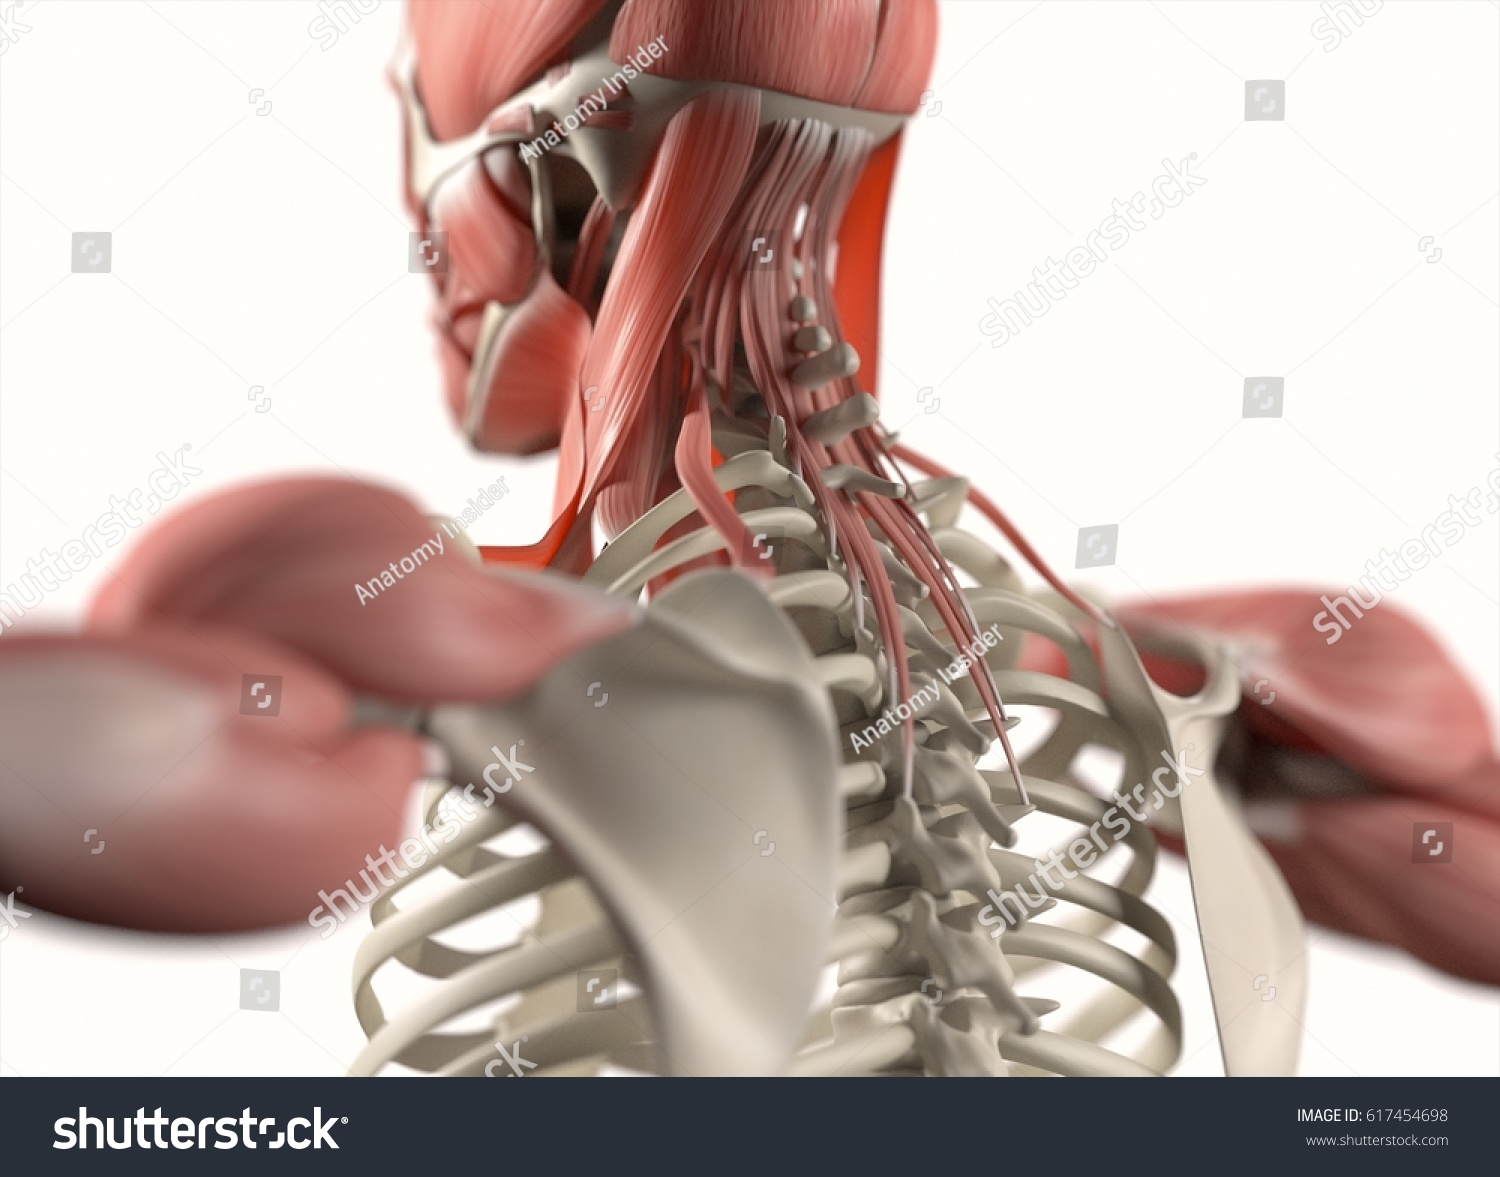 Human Anatomy Body Spineback Neck Scapula Stock Illustration